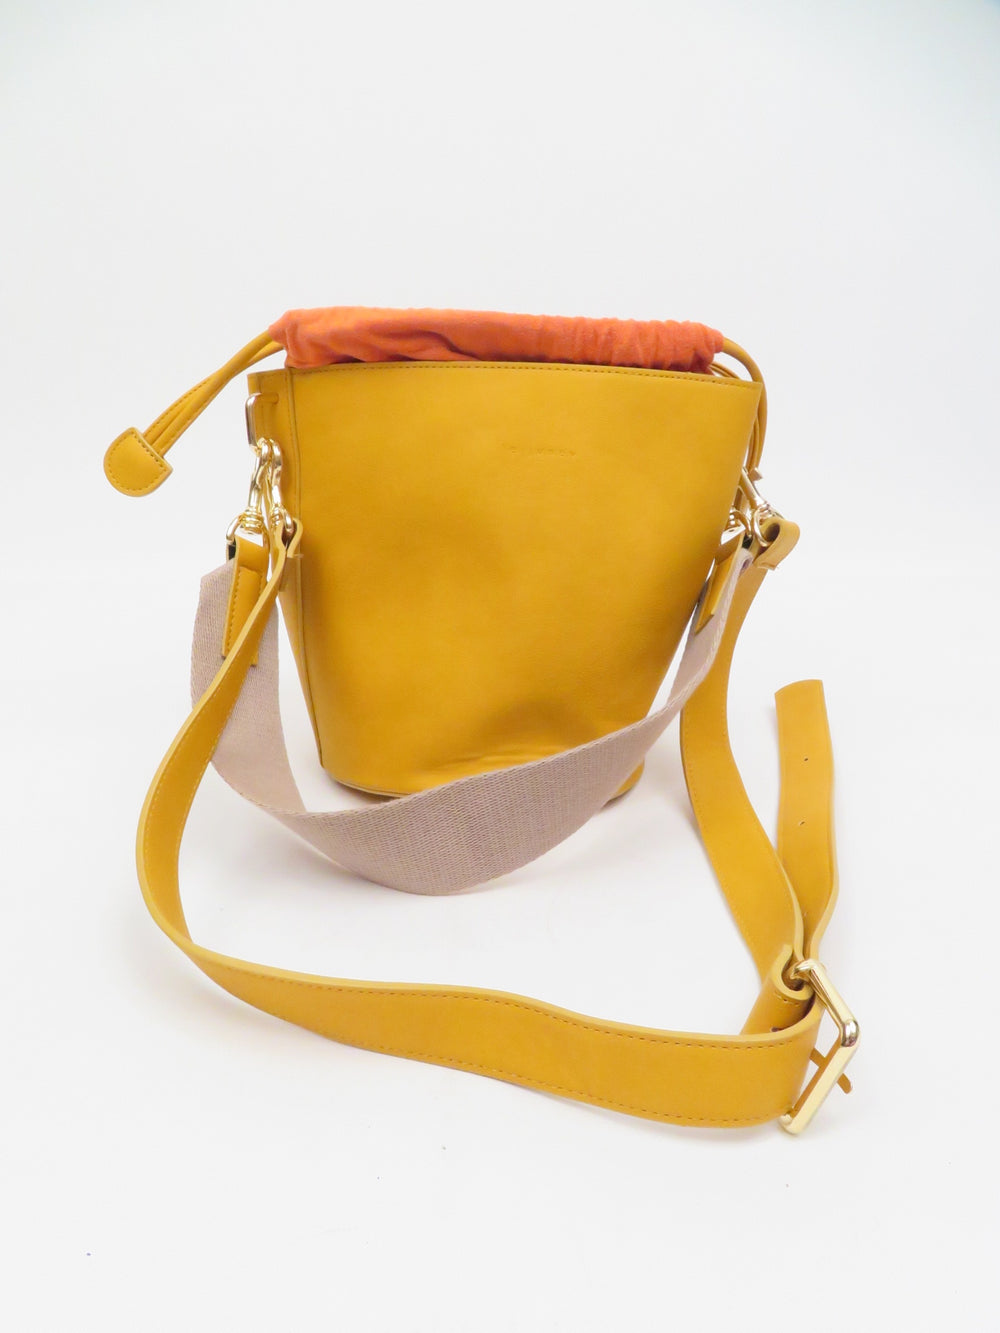 le.junev yellow and orange bucket bag. features dual strap and handle attachments. drawstring closure bucket top.